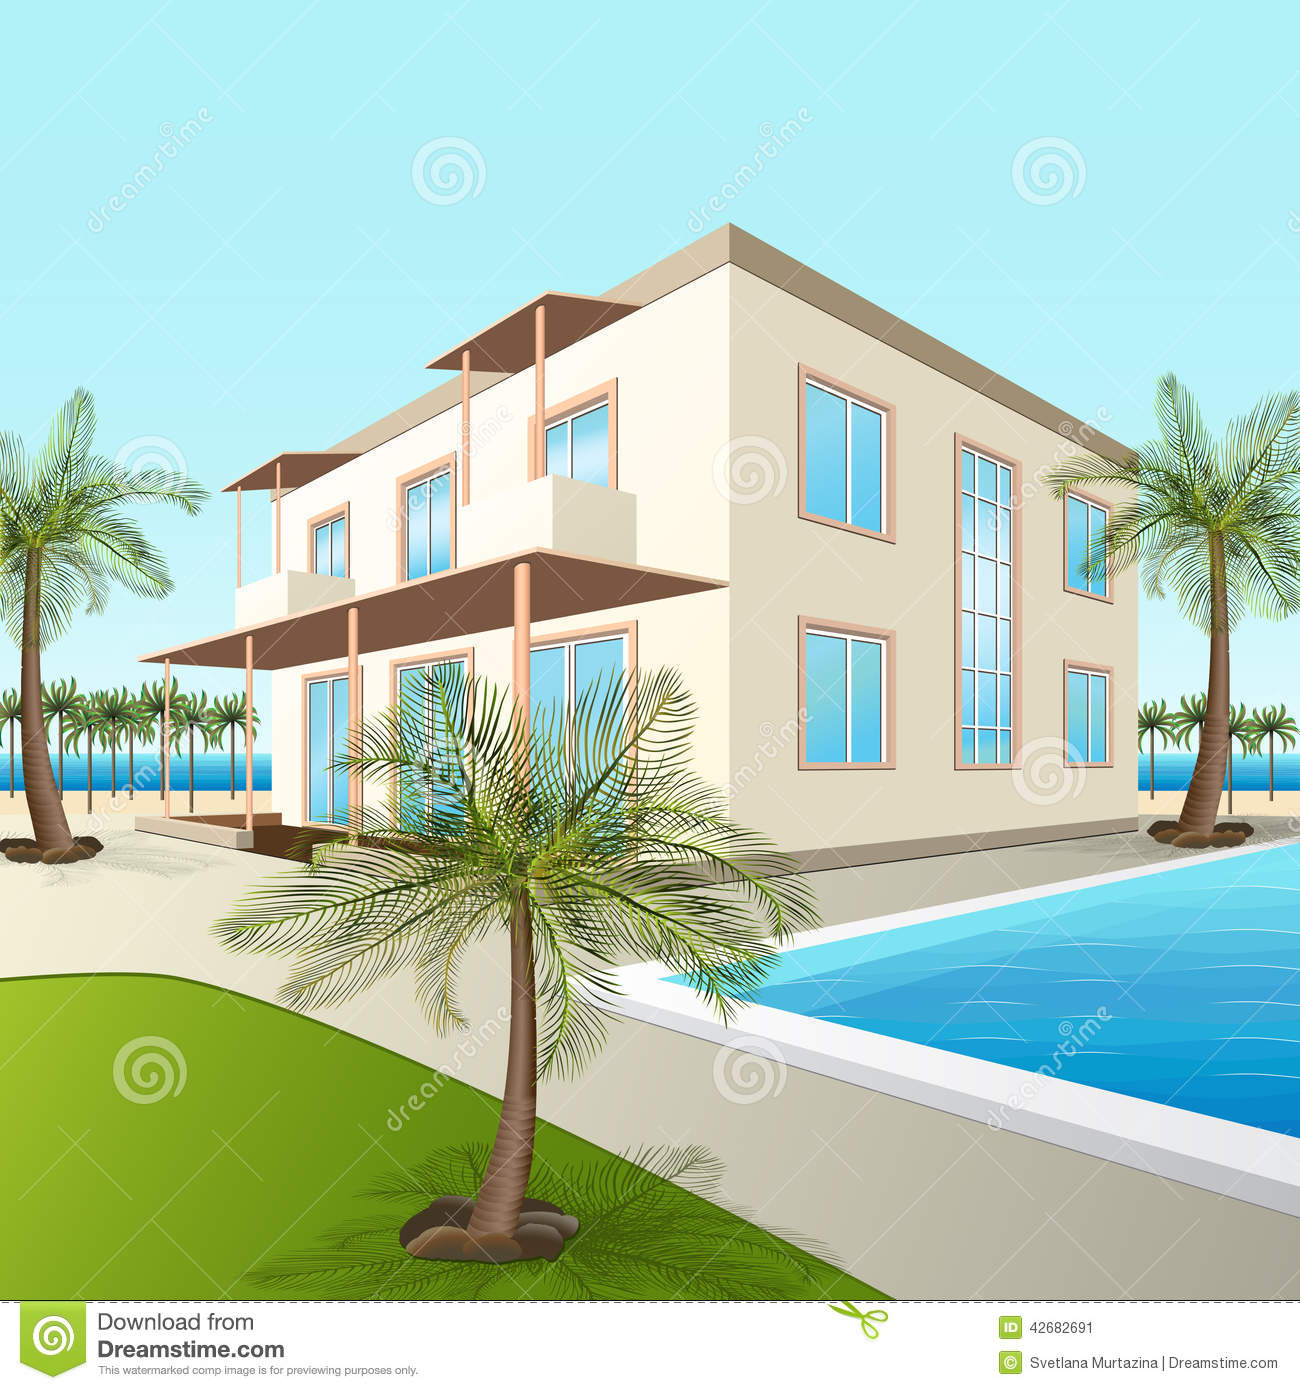 Building A Small Hotel With Sea And Palm Trees Stock